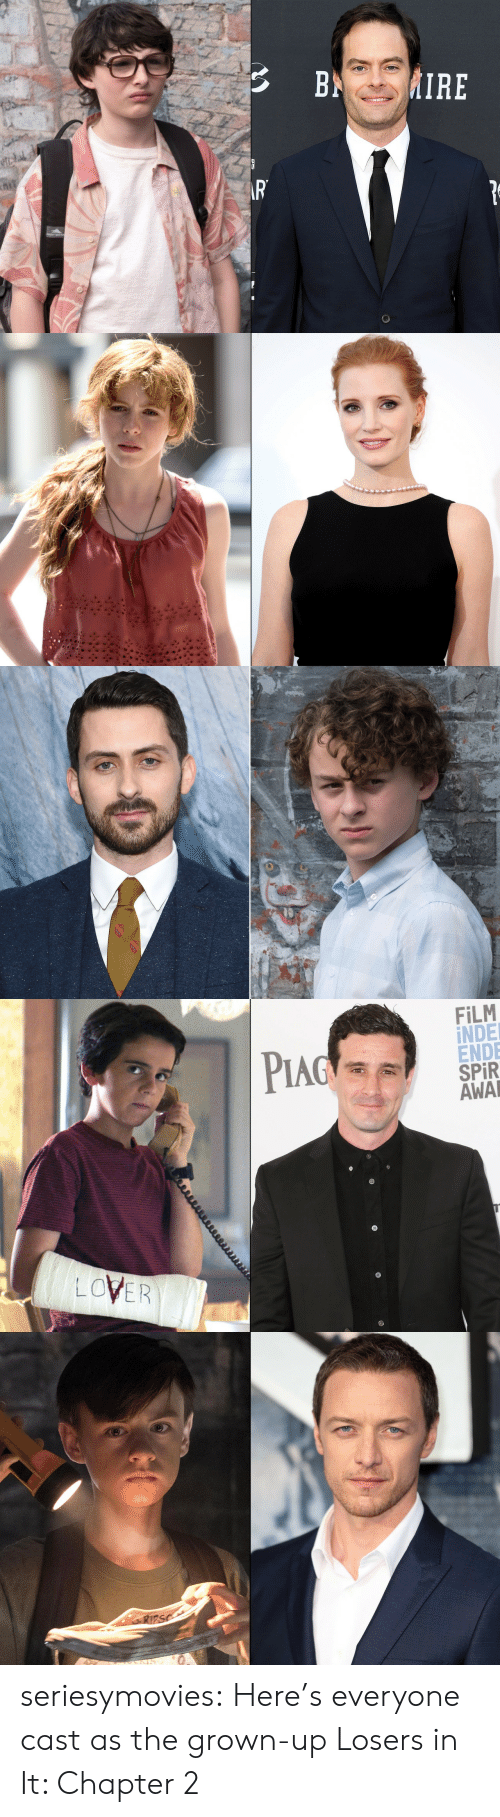 Tumblr, Blog, and Film: Pind :  FİLM  İNDE  ENDE  SPR  AWA  PIA  LOVER seriesymovies:  Here's everyone cast as the grown-up Losers in It: Chapter 2